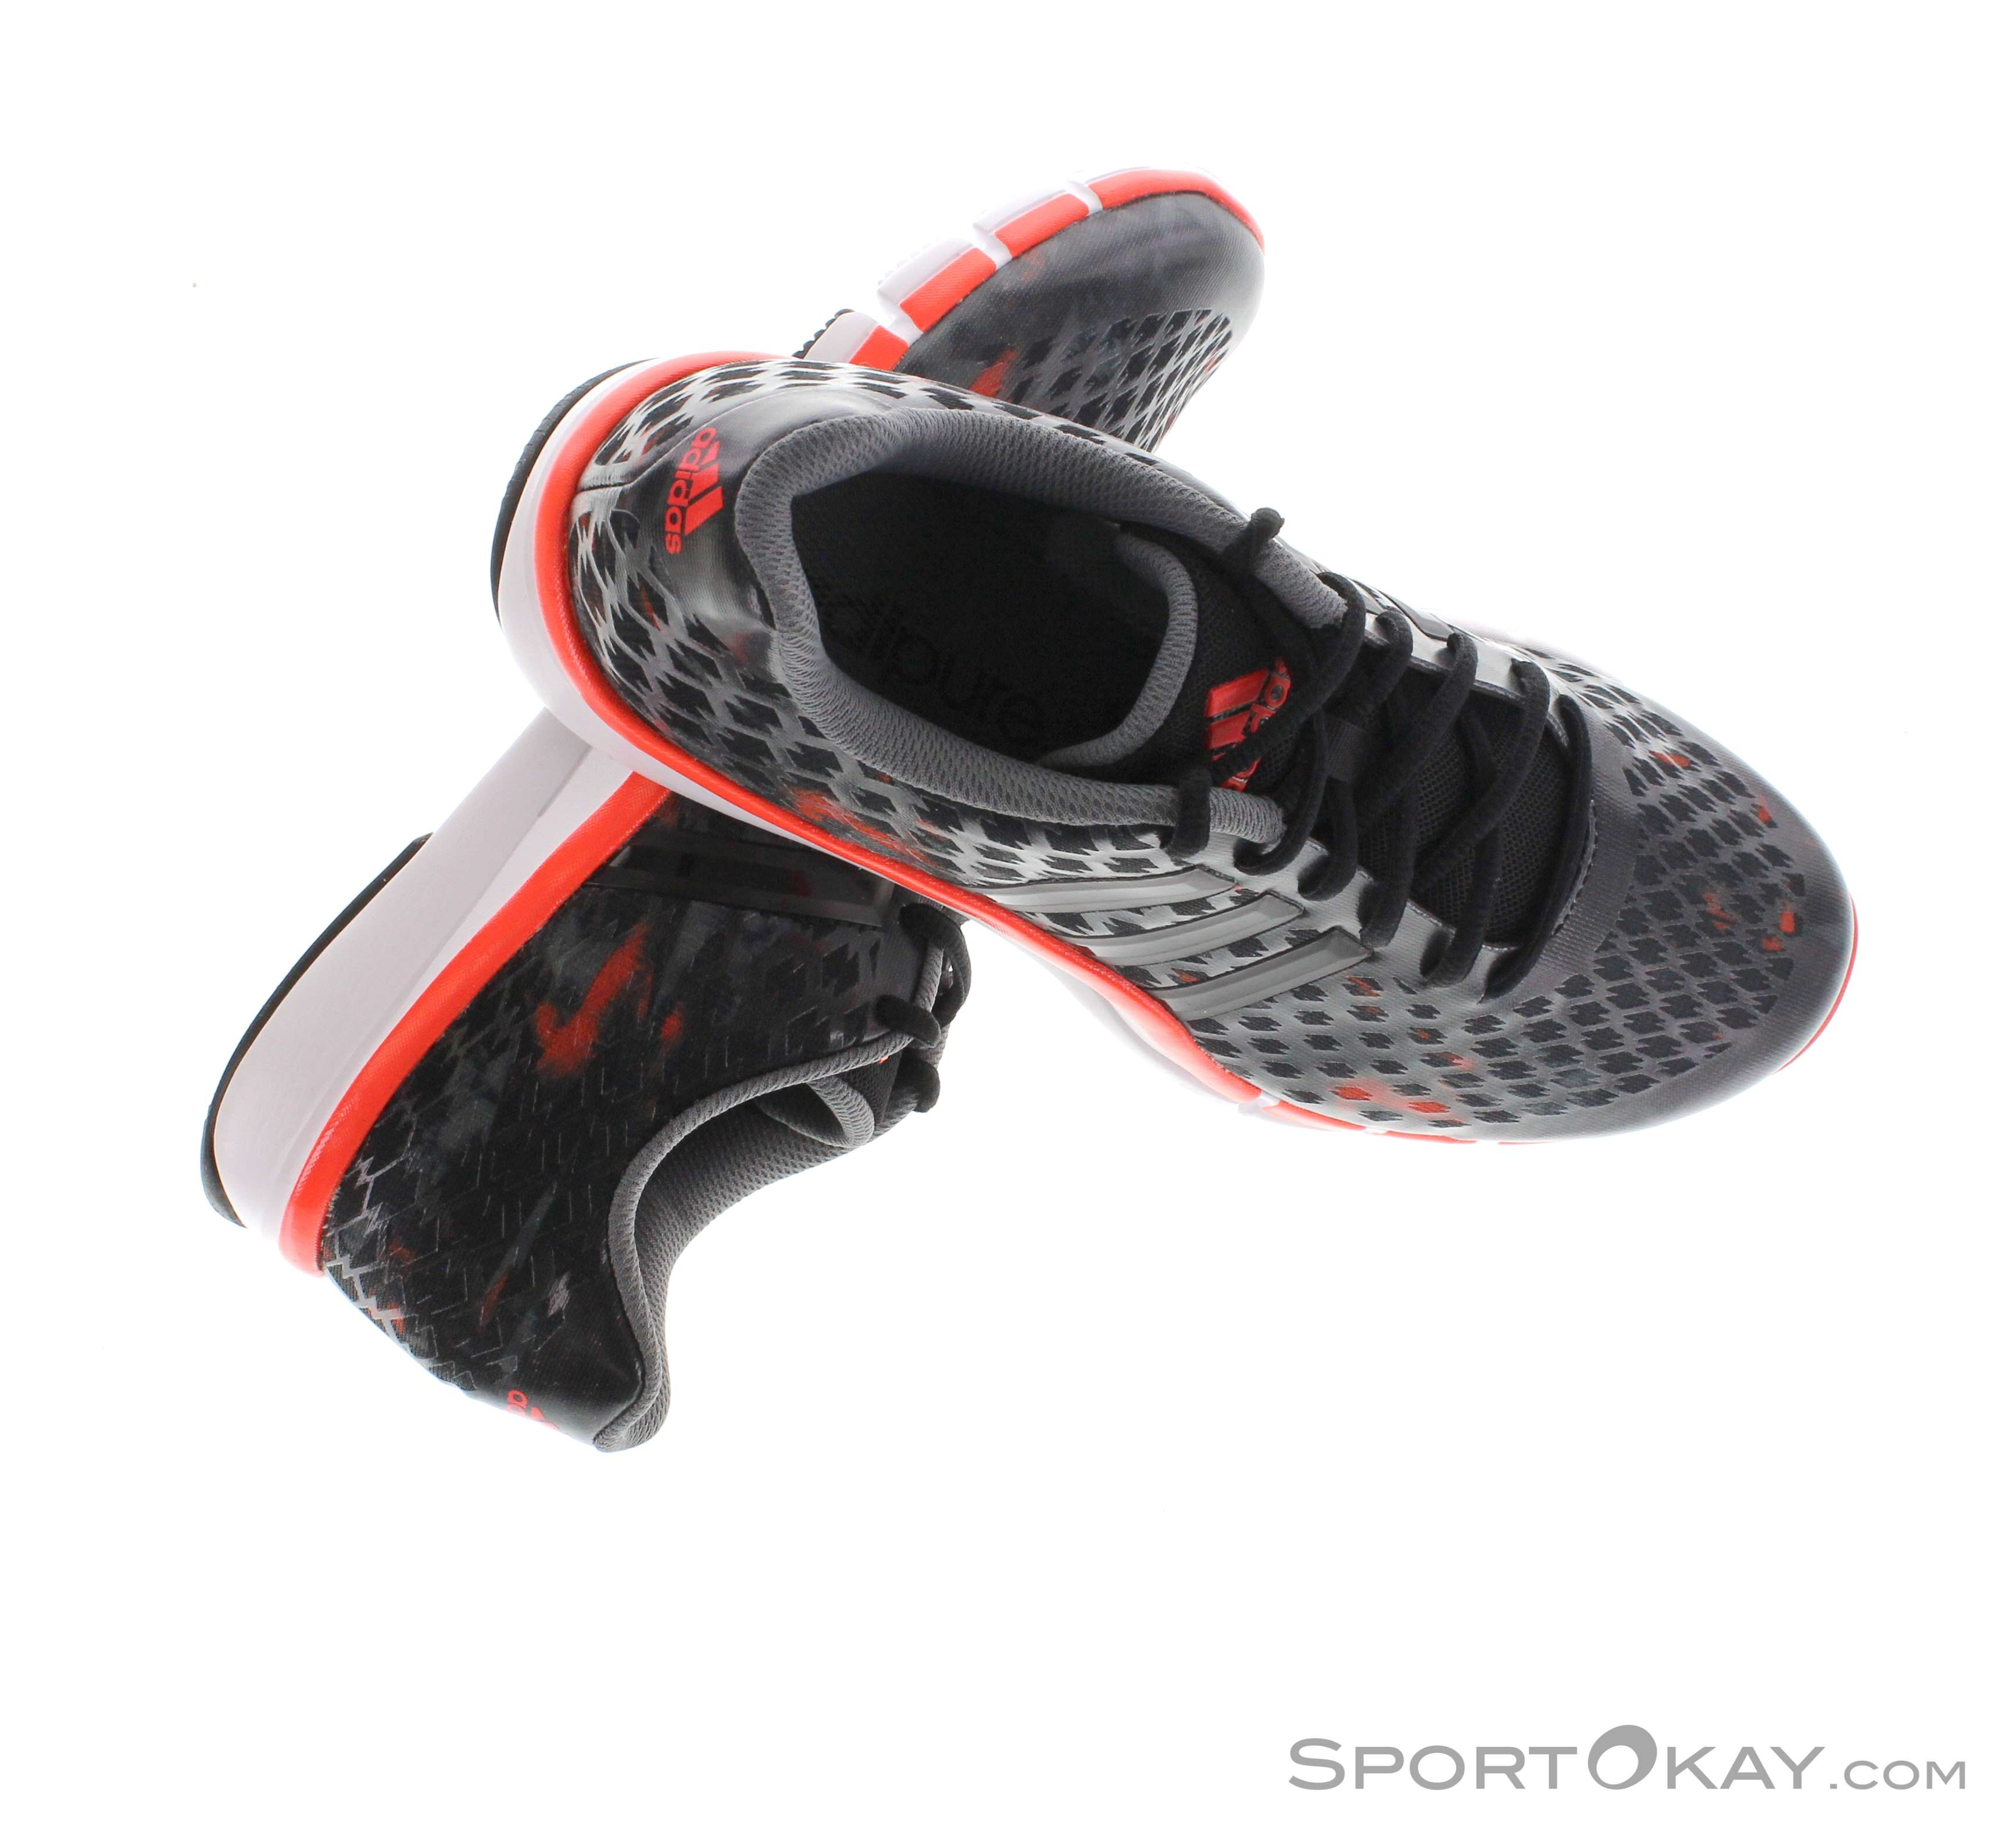 Shoes Primo 360 Fitness Adidas 2 Adipure Mens S1xw6Yw